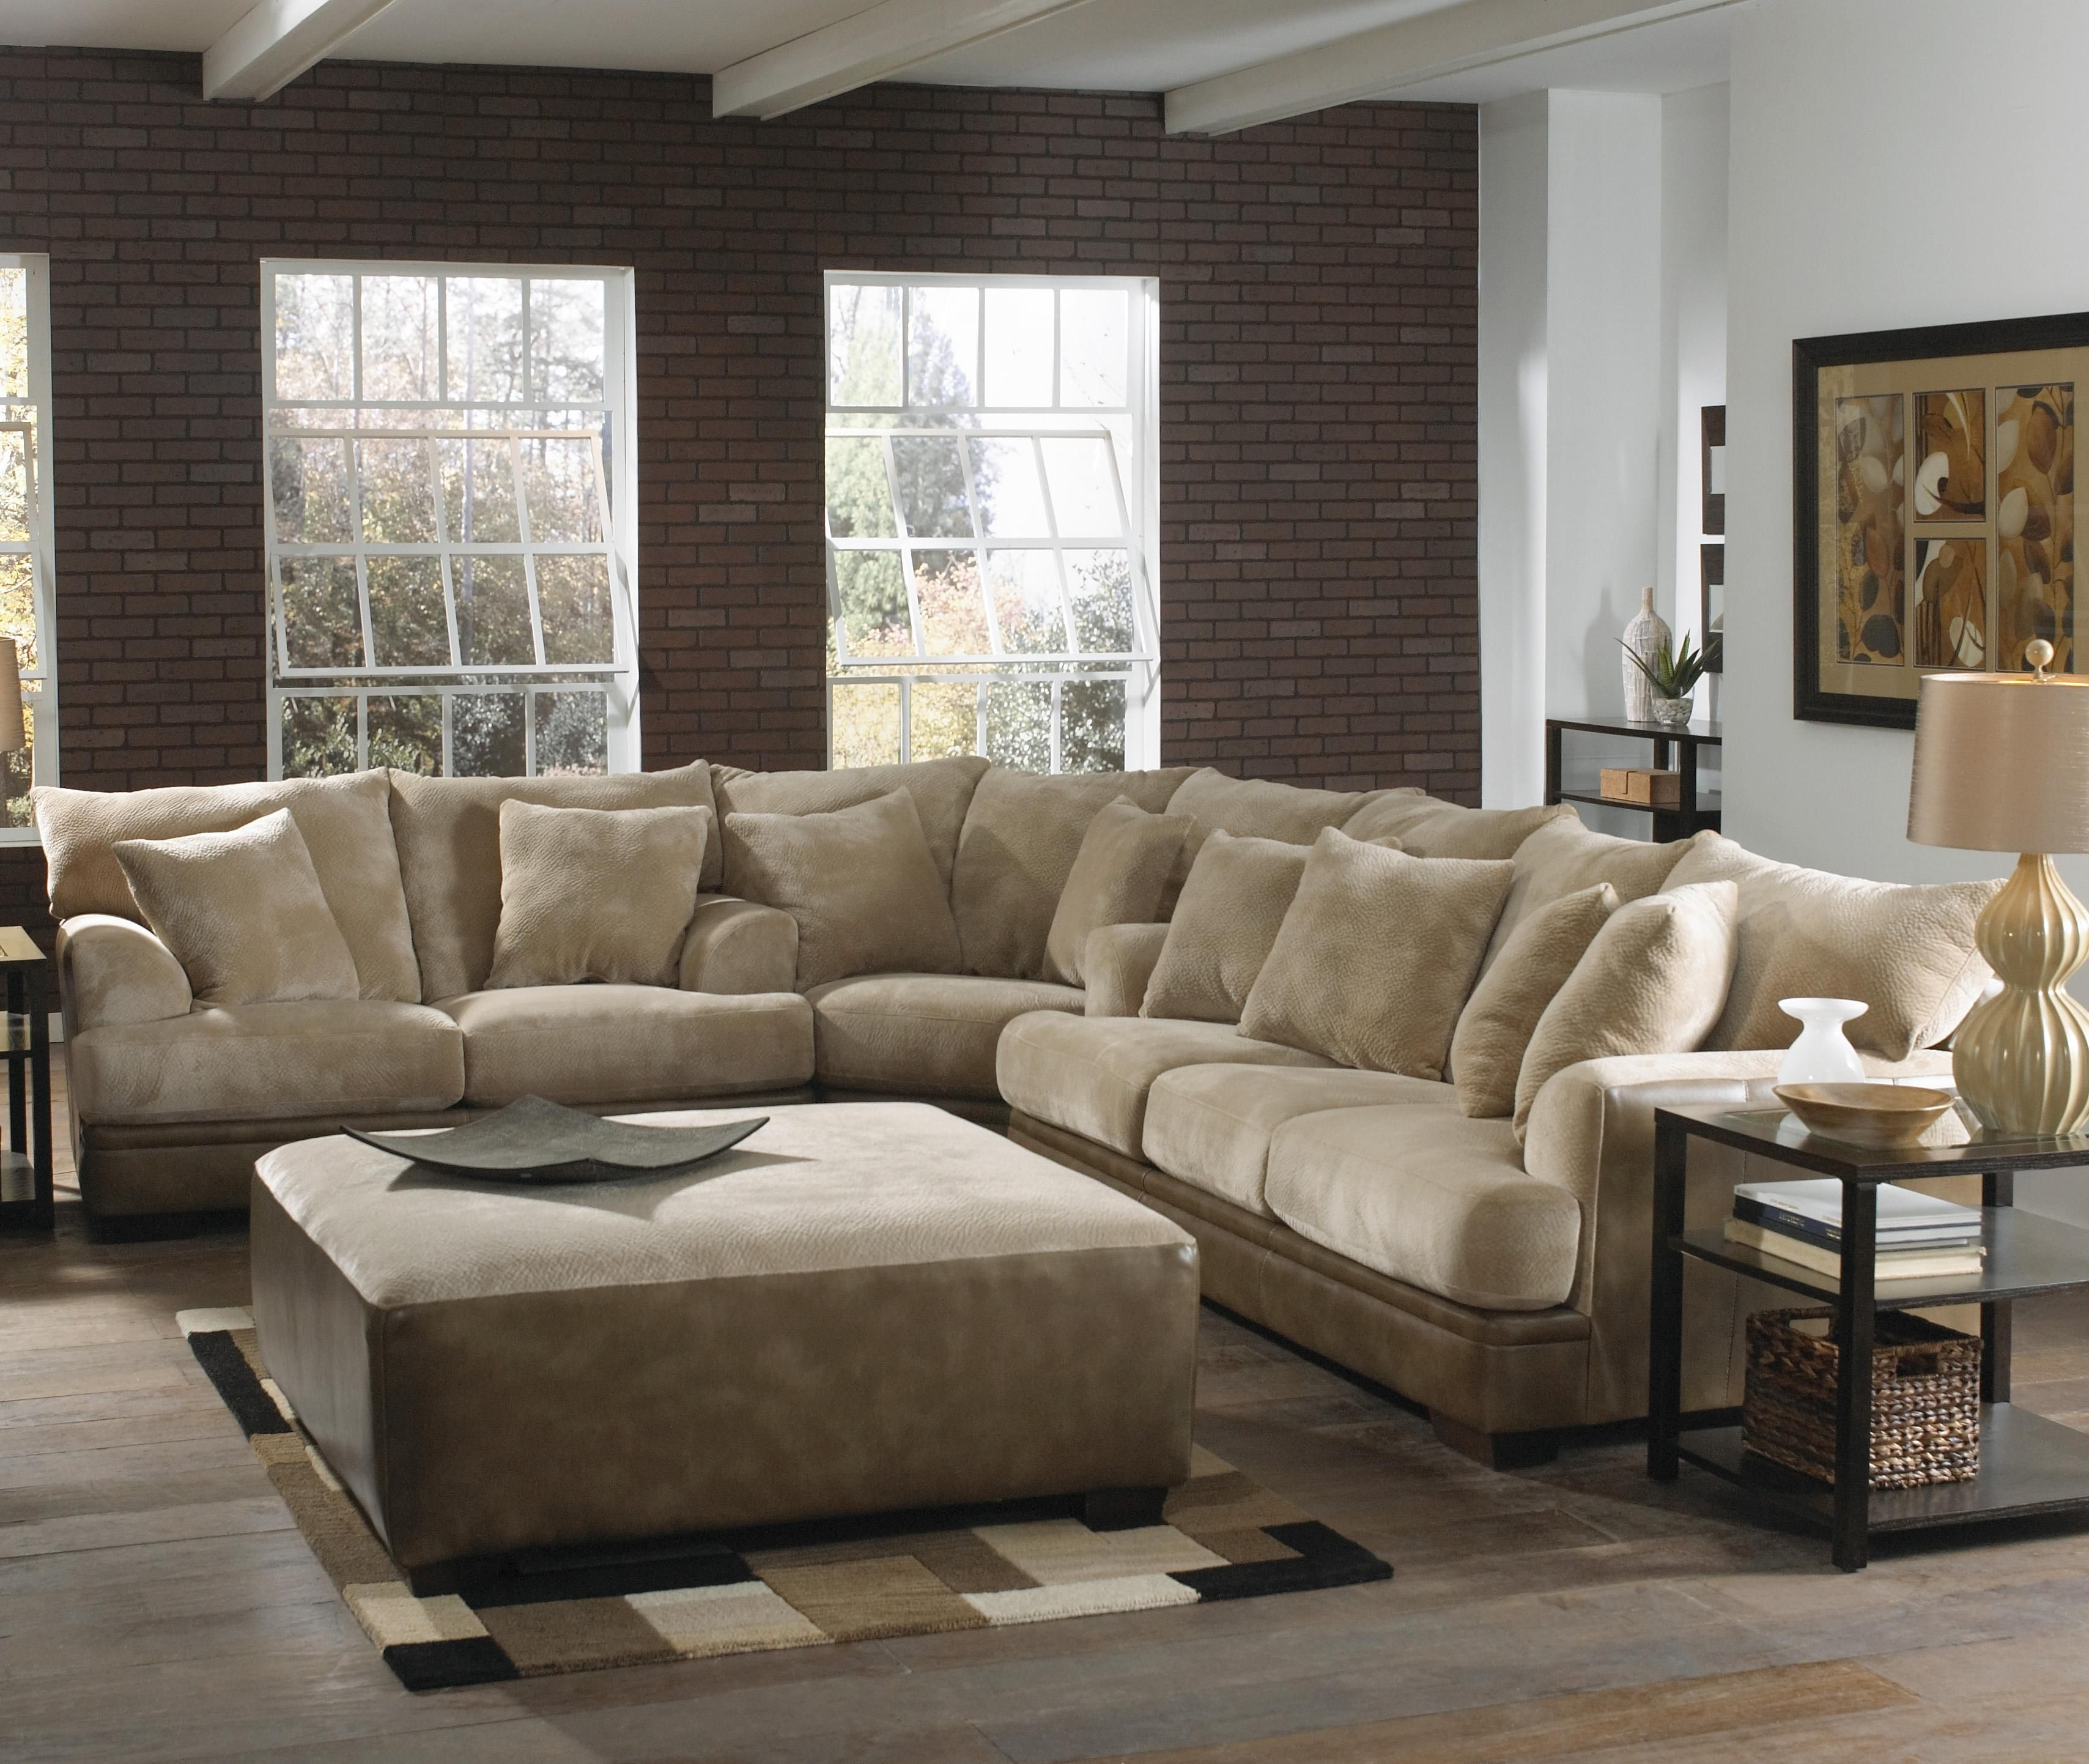 Most Recently Released Barkley Large L Shaped Sectional Sofa With Right Side Loveseat Regarding Jackson Tn Sectional Sofas (View 11 of 15)